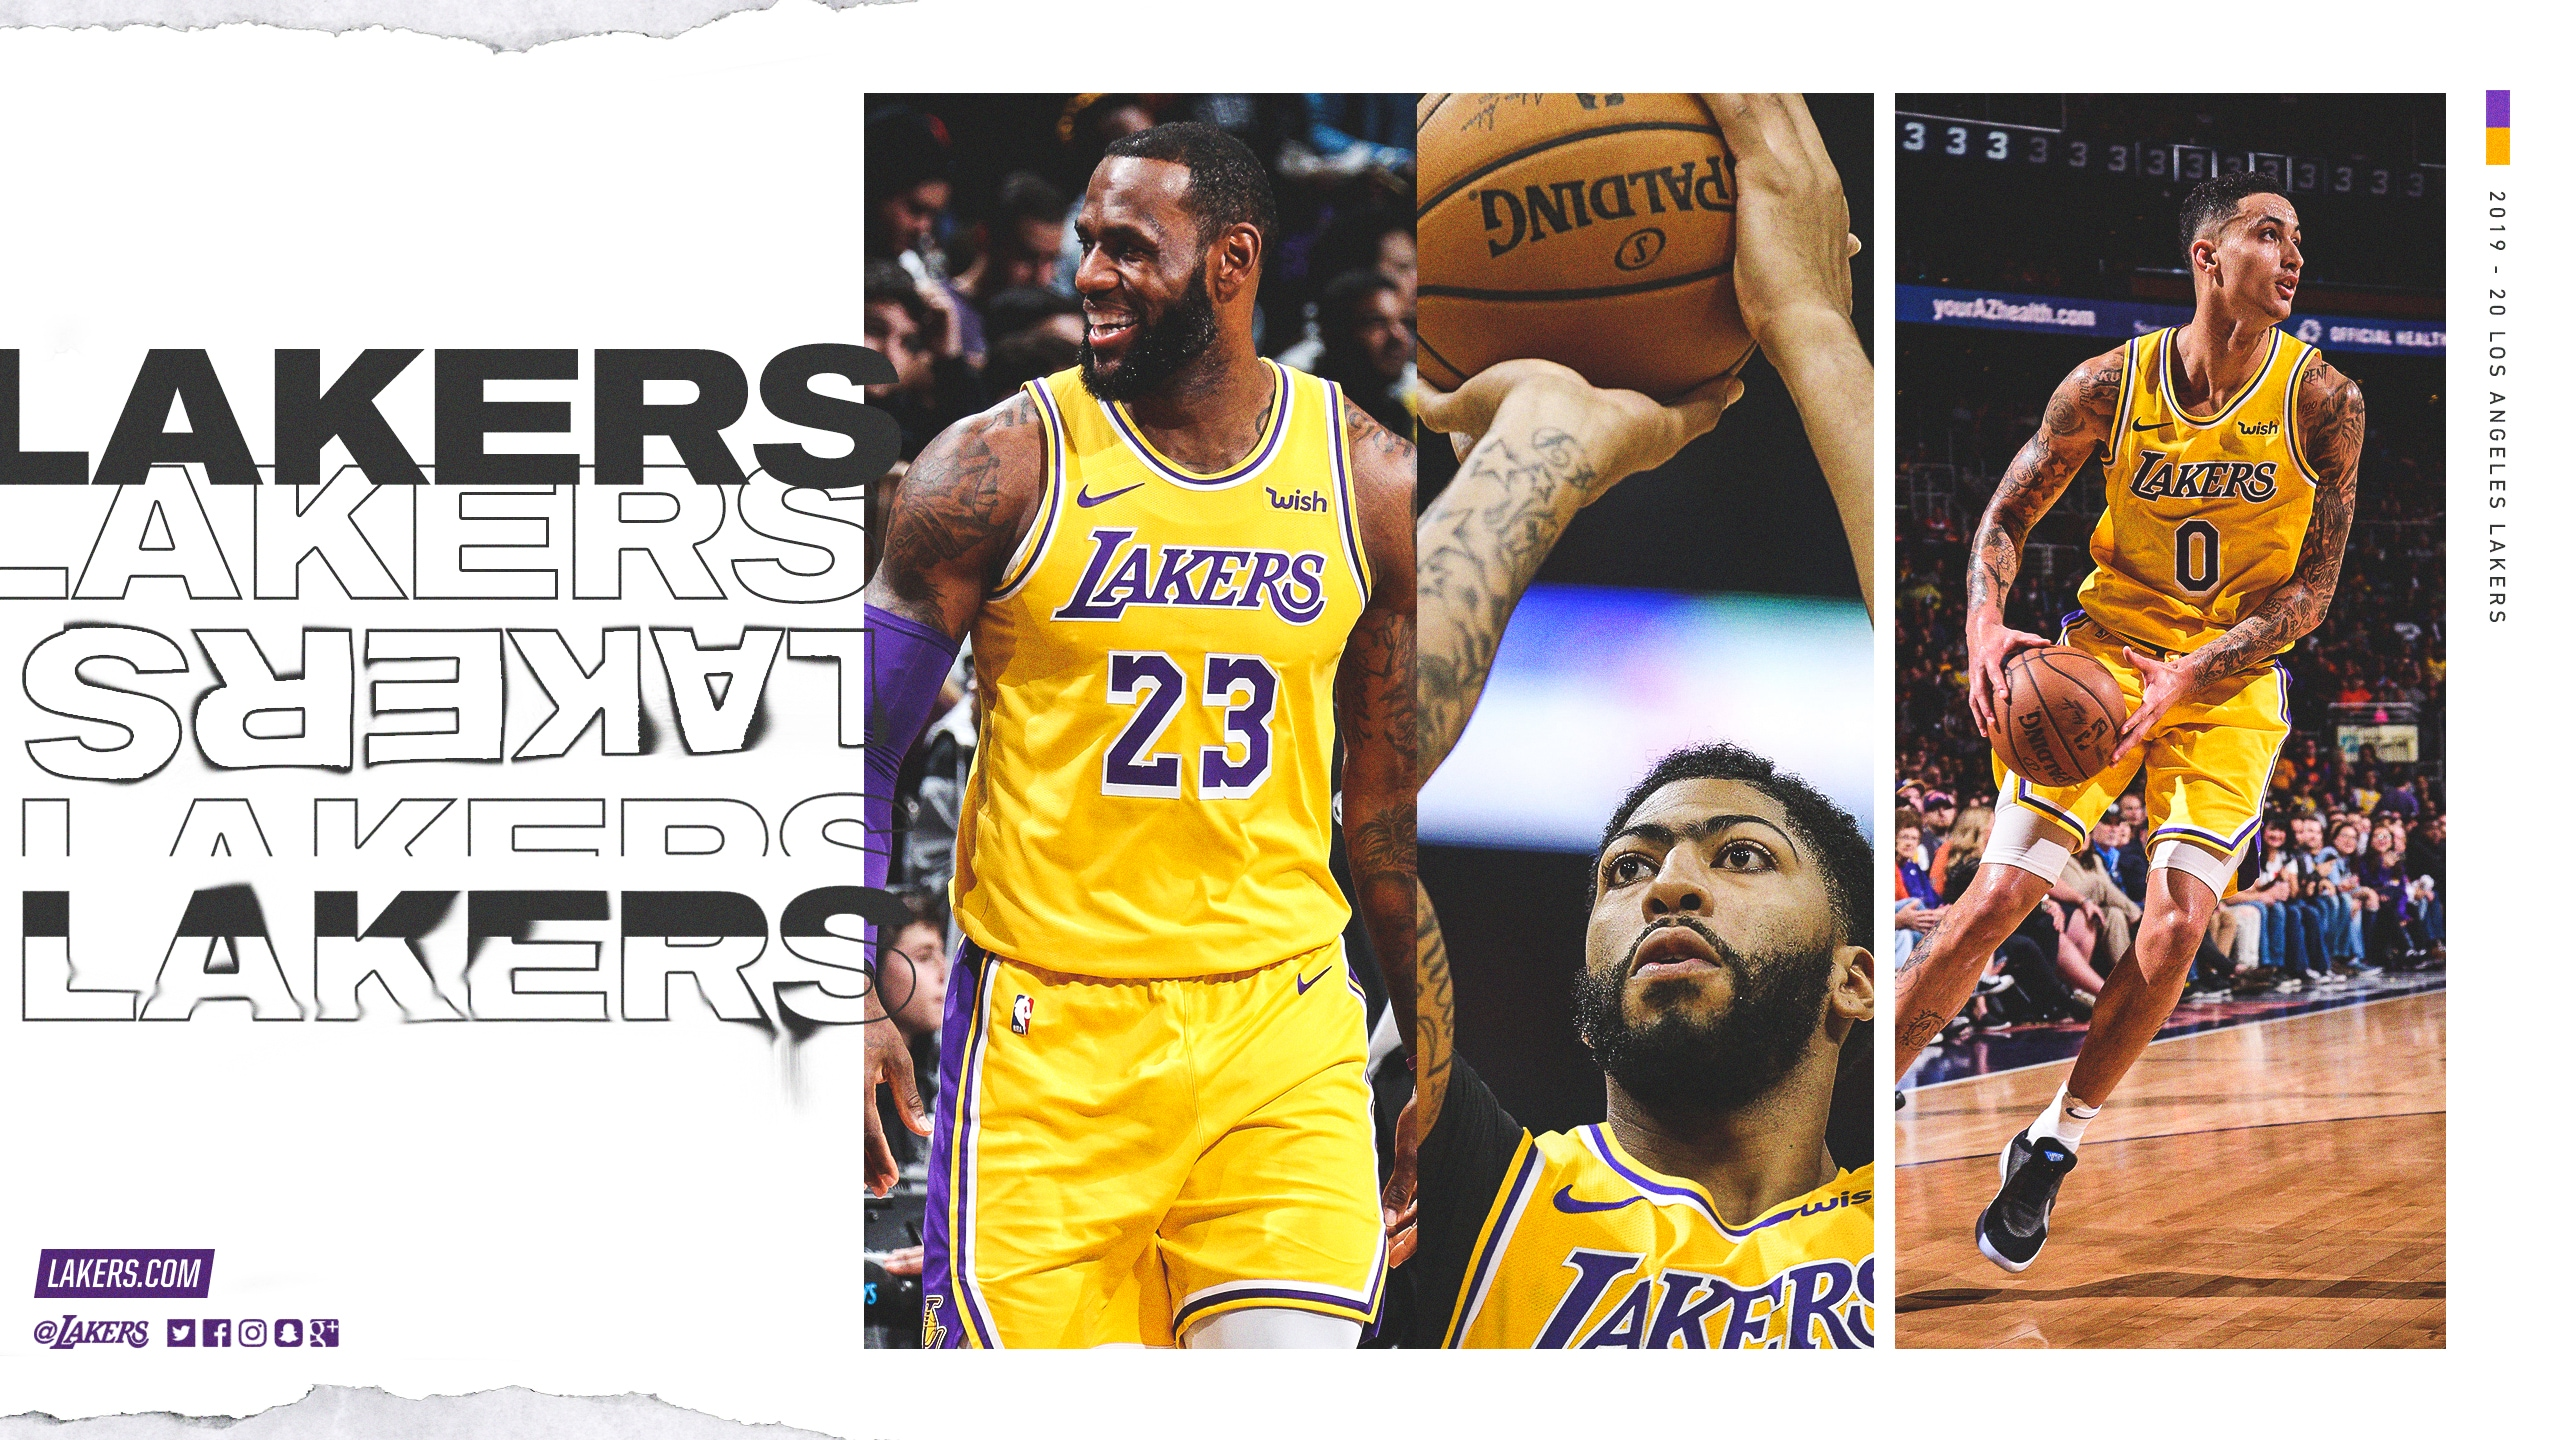 Nba Calendario 2020.Lakers Wallpapers And Infographics Los Angeles Lakers